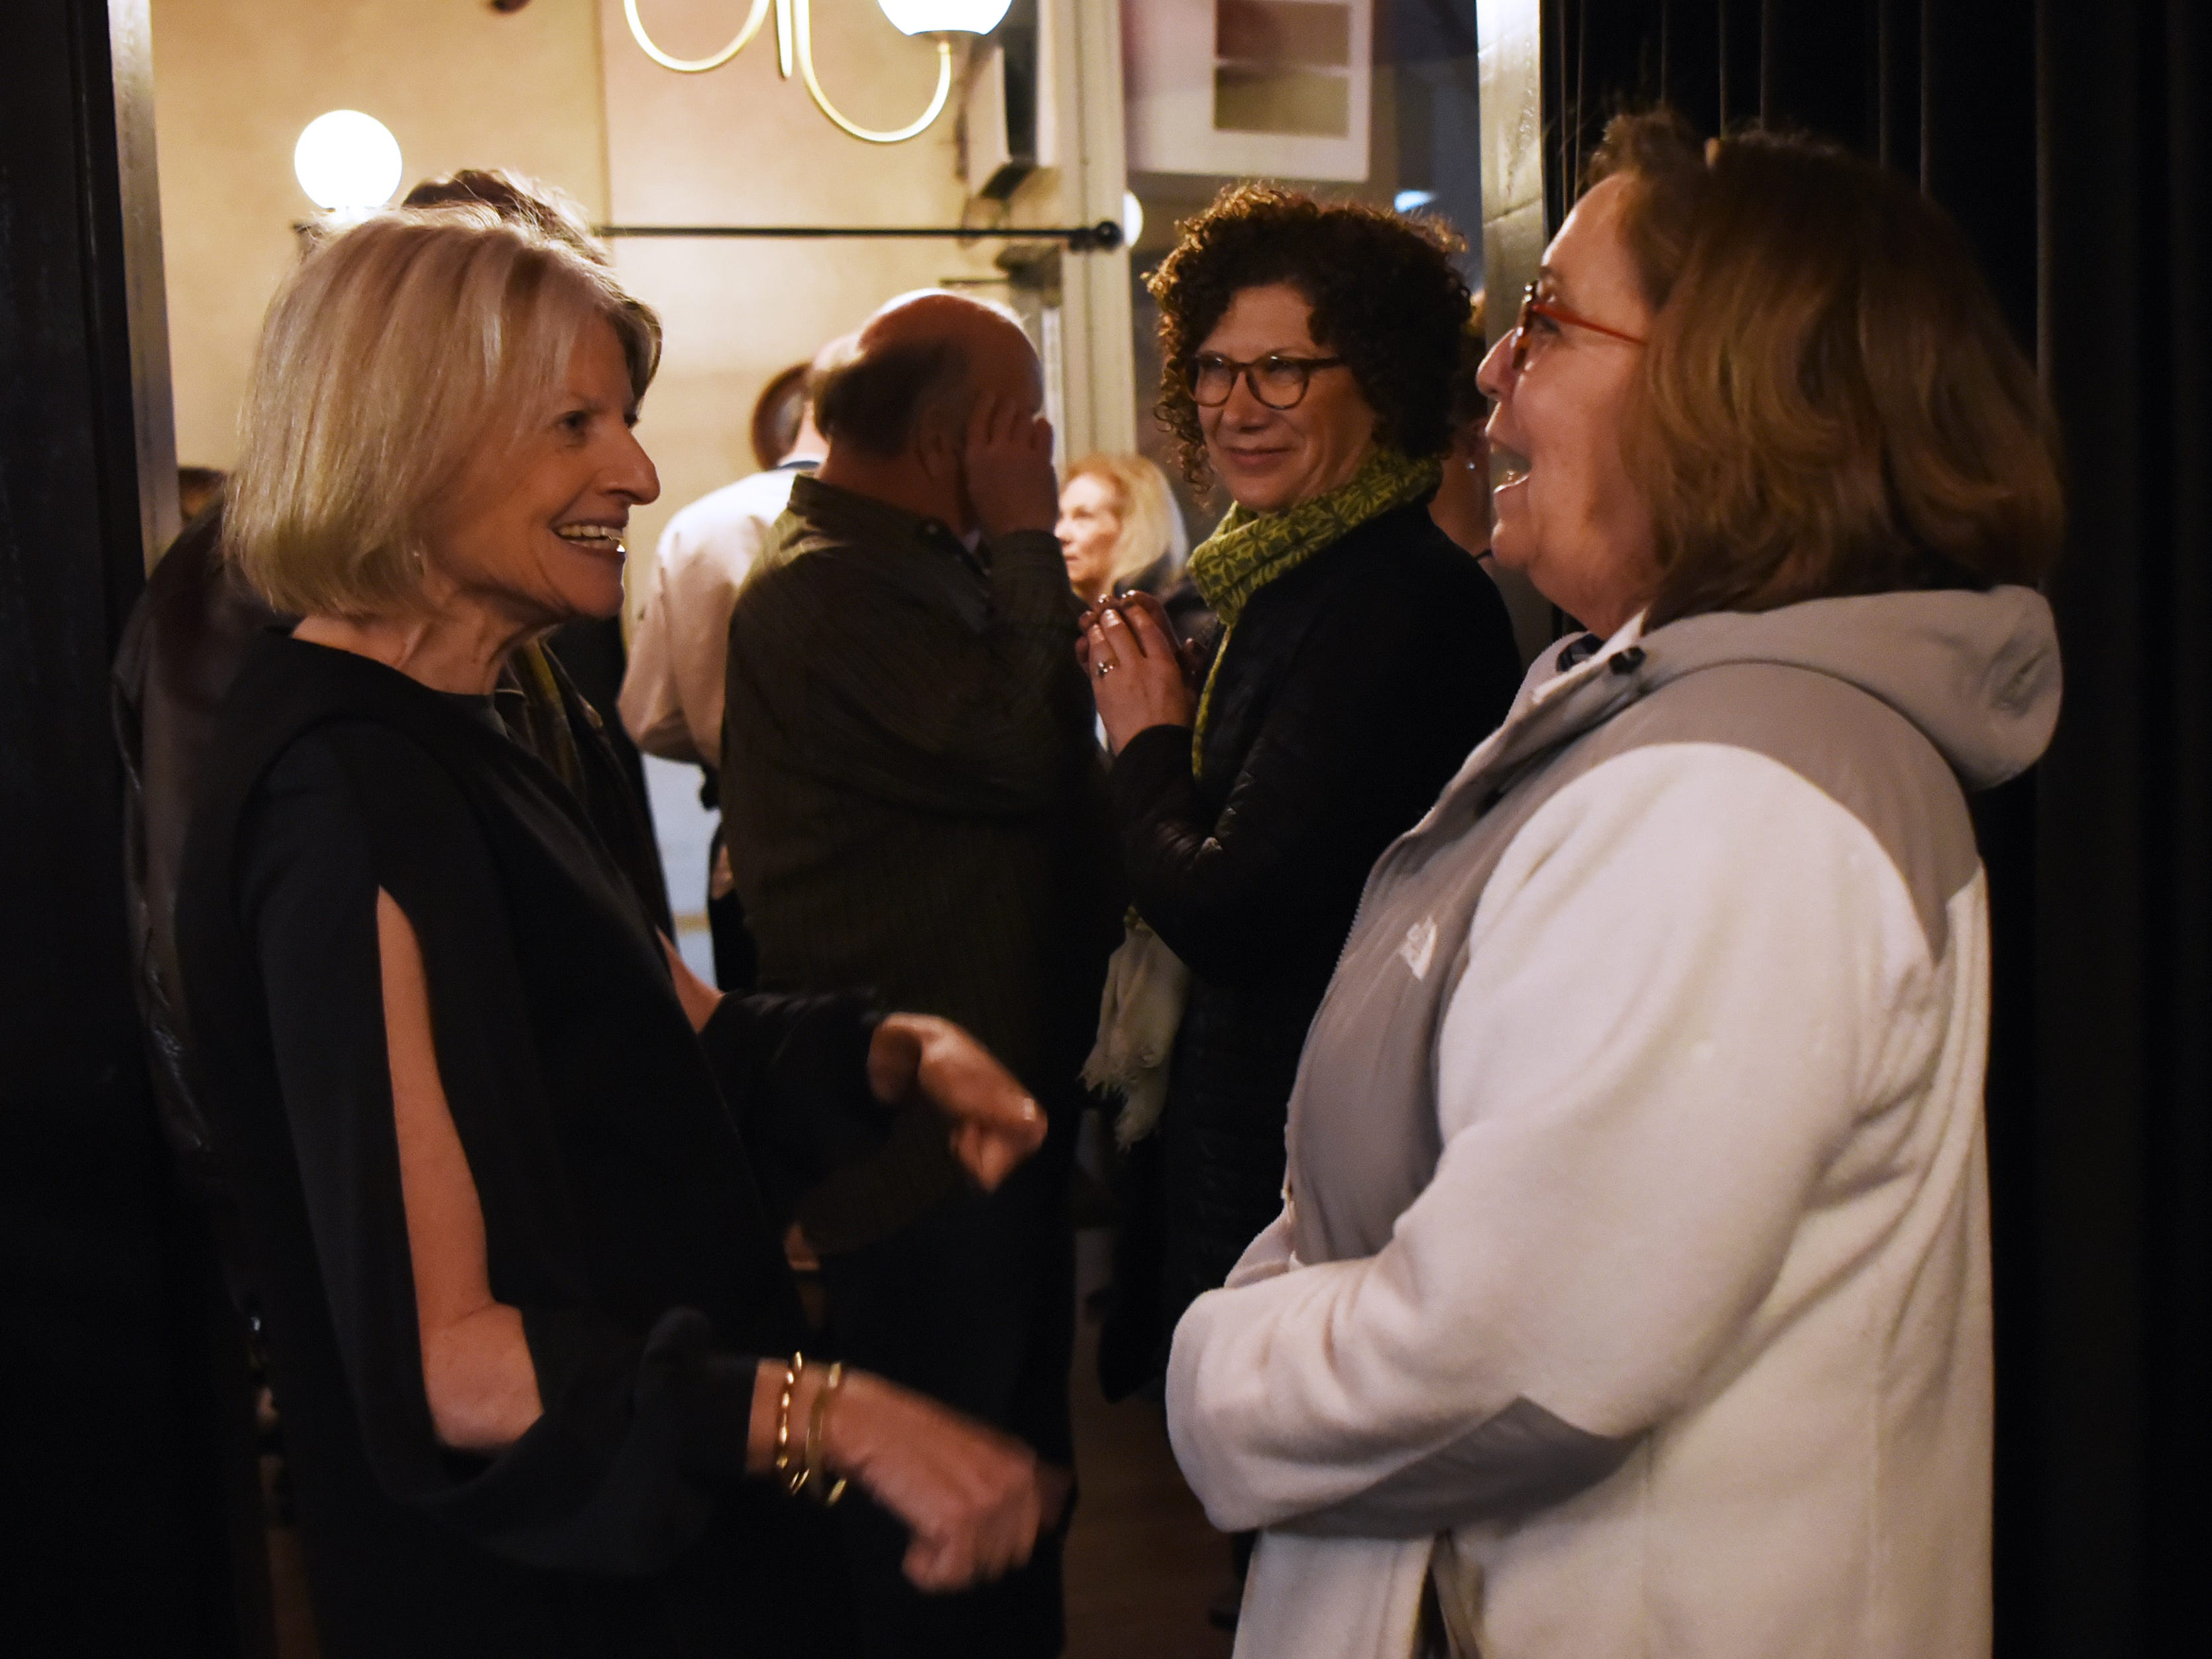 Food editor Esther Davidowitz greets guests during the dinner with Esther event at Technique, a French restaurant in Westwood on Thursday February 7, 2019.